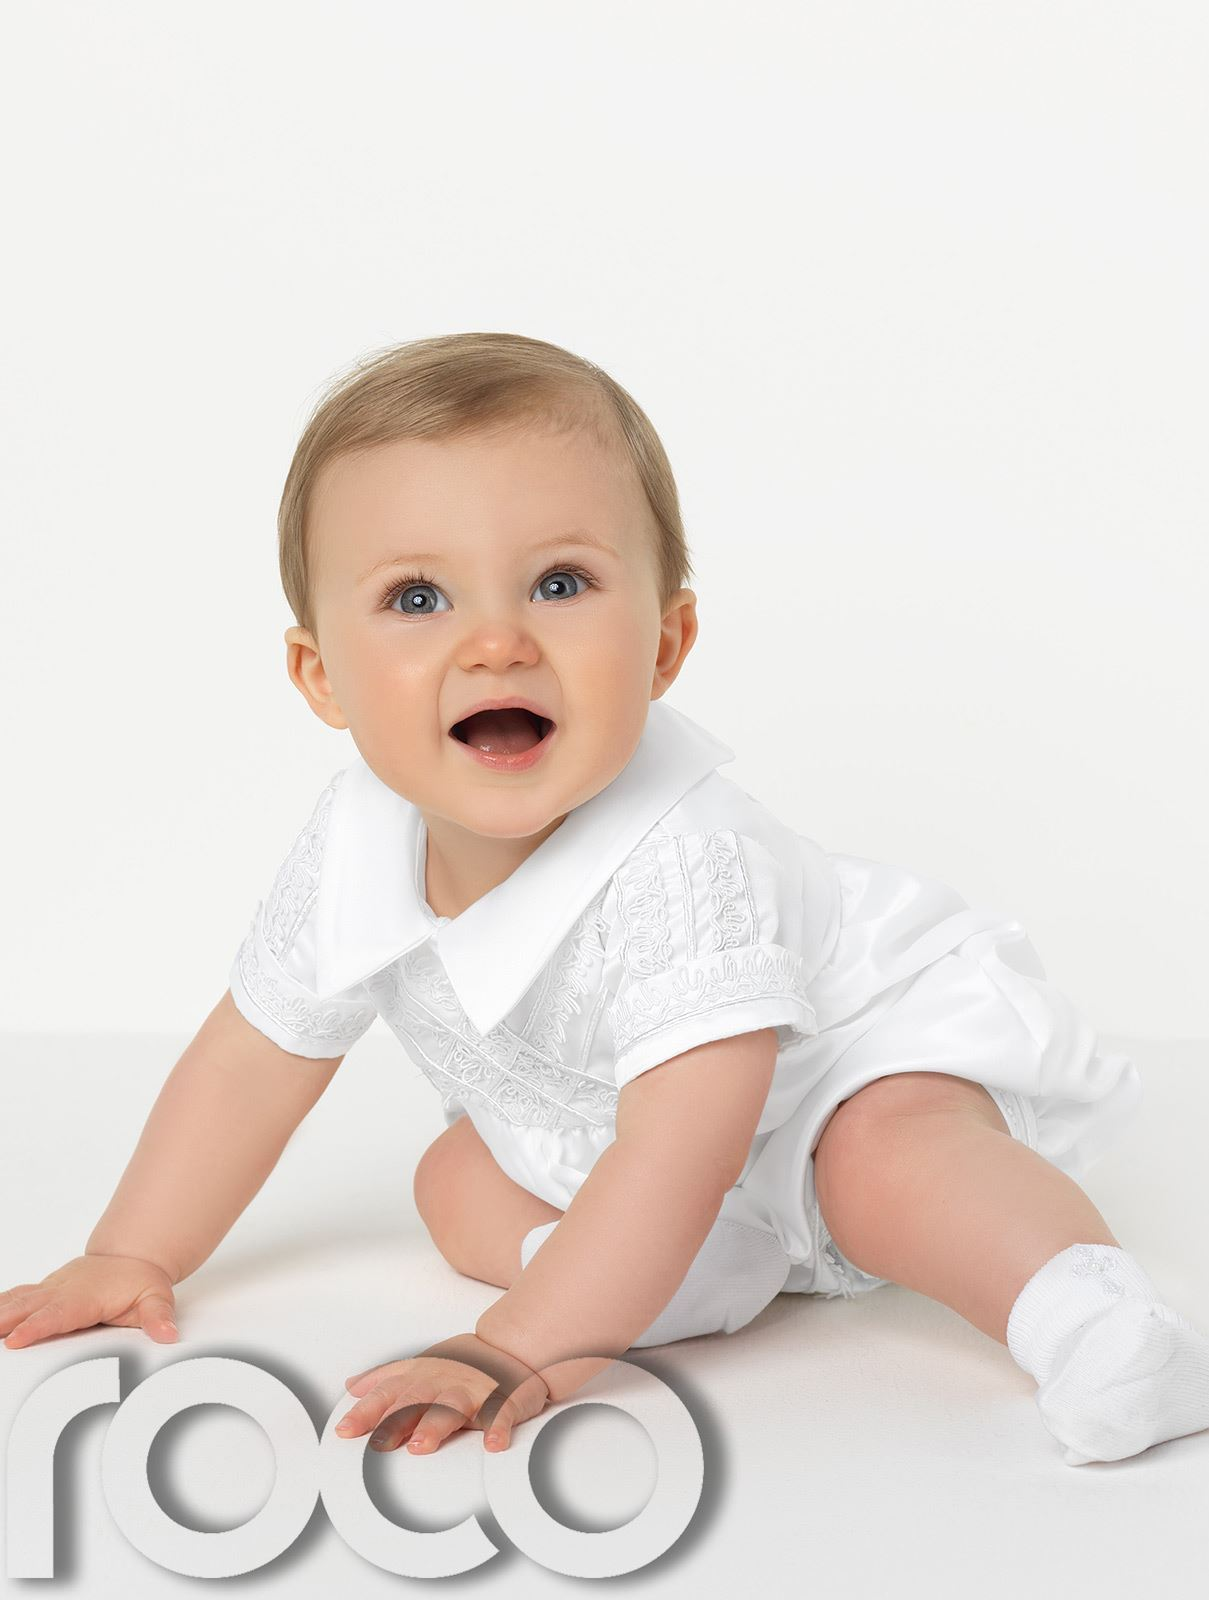 Baby-Boys-Romper-Suits-Boys-Christening-Outfits-Boys-Christening-Suits thumbnail 8